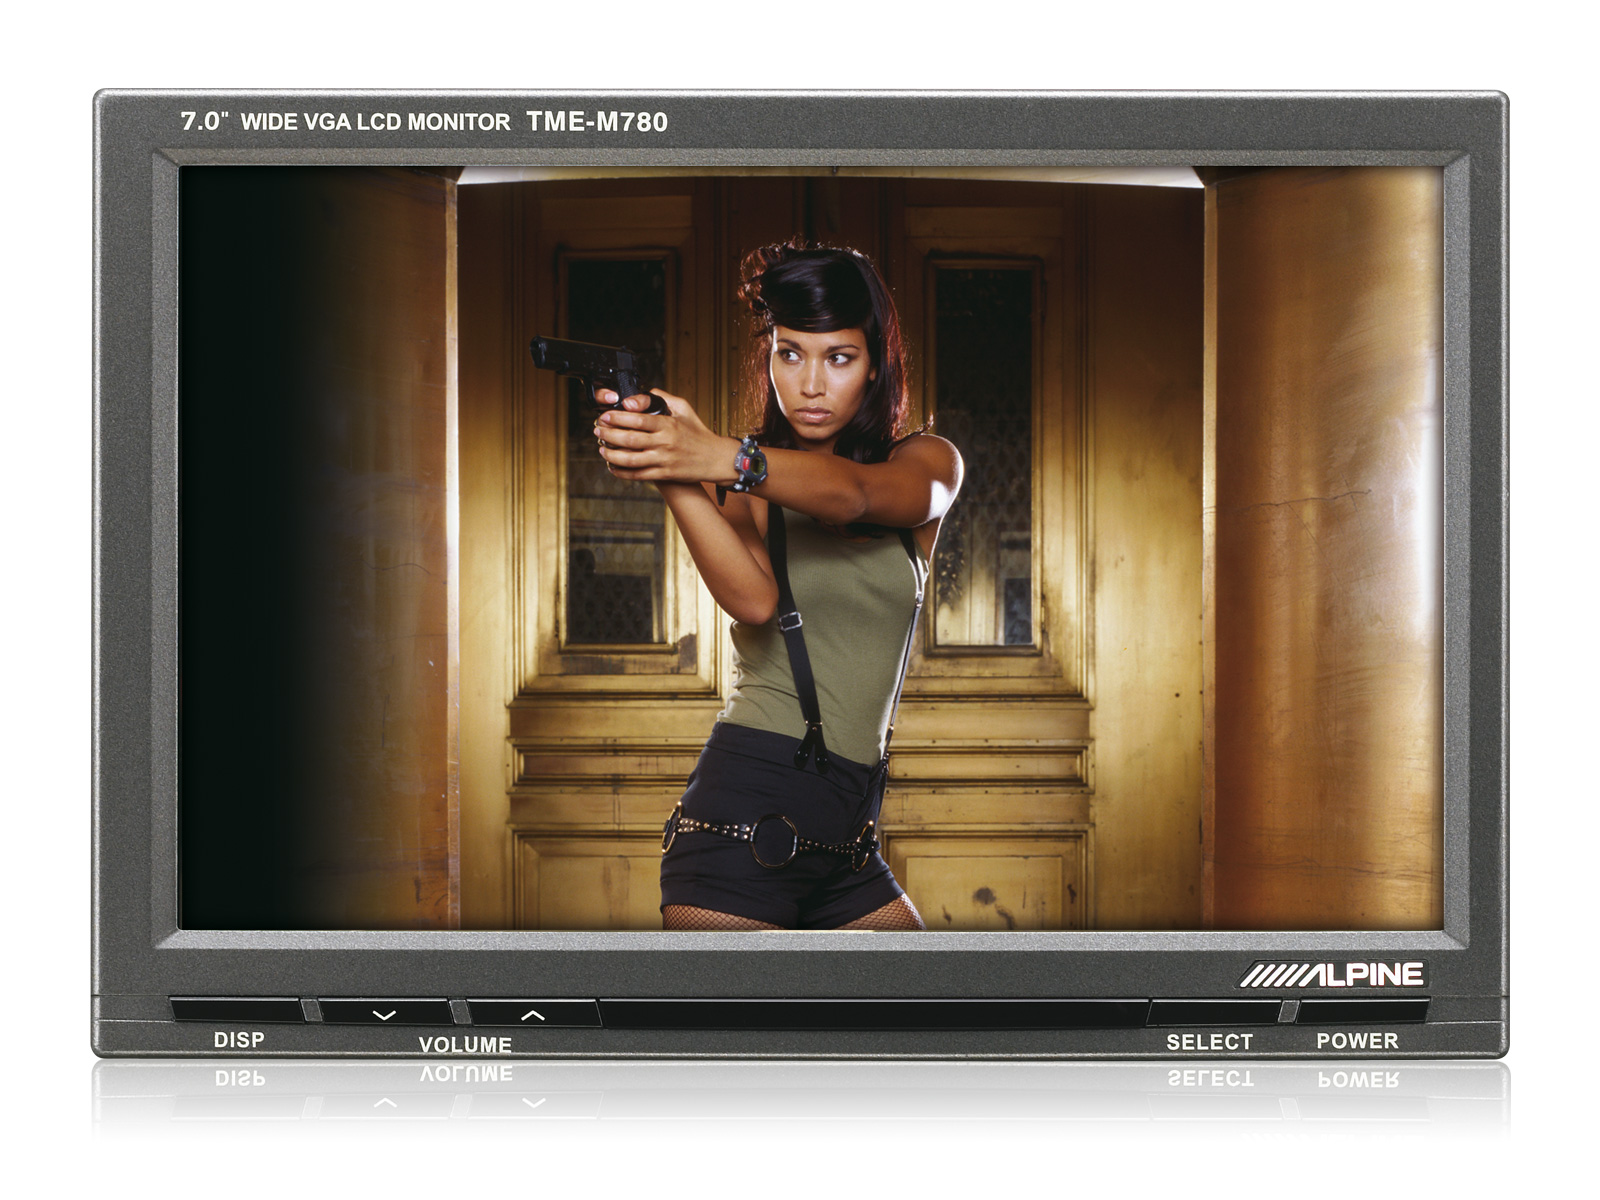 """7 wide monitor alpine tme m780 in order to protect your data security alpine provides you the 2 clicks data security function by default social """"like it"""" buttons on the alpine website"""